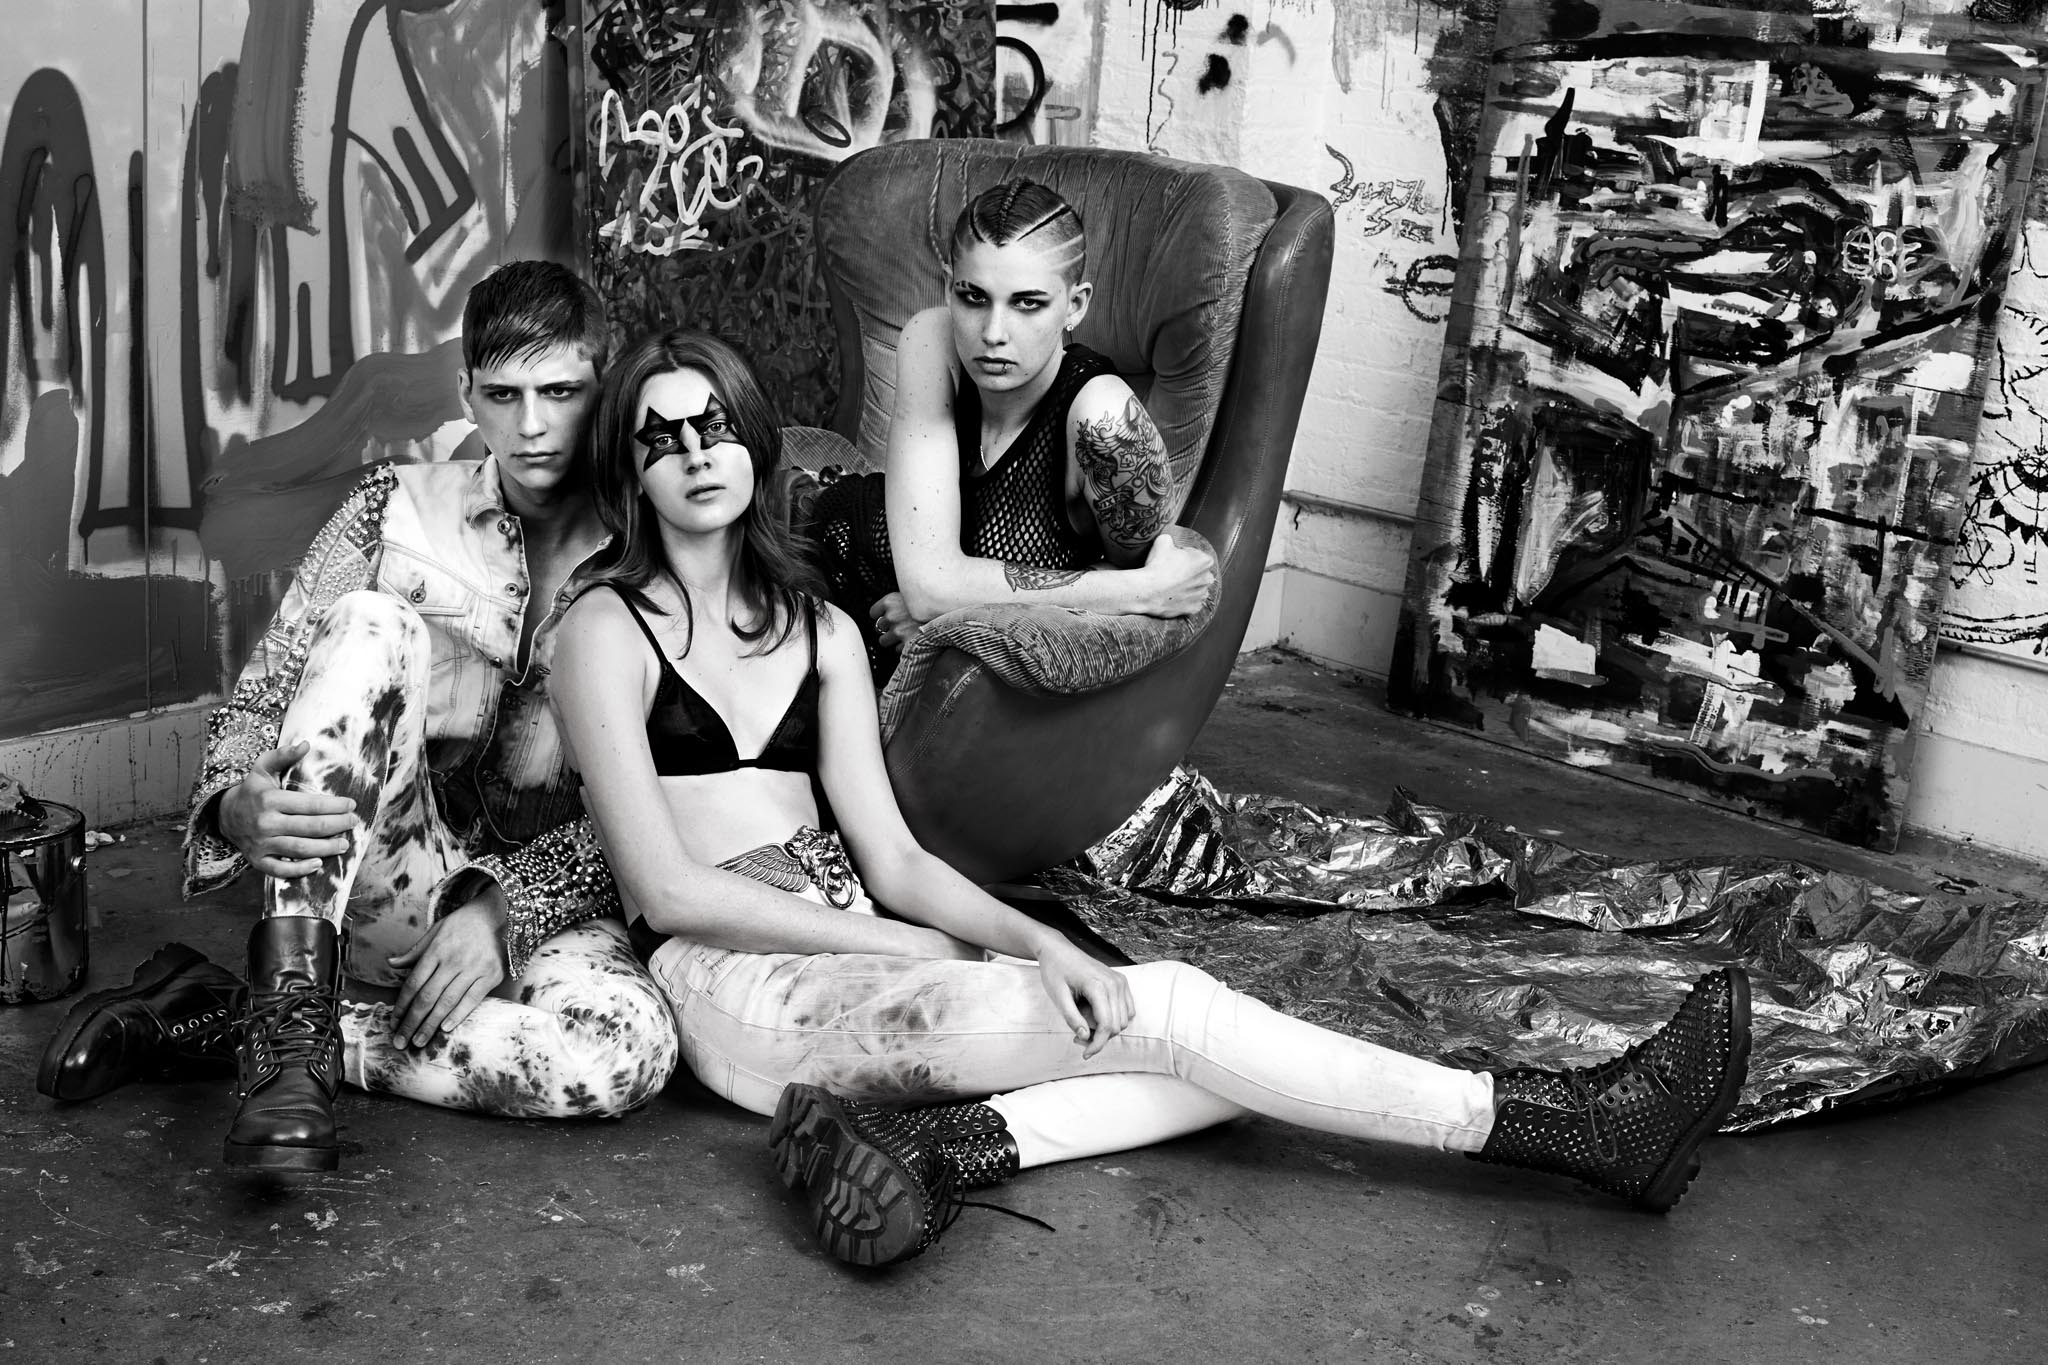 e d section 2622_140425_DSECTION_DIESEL_S11_GROUP_B_0184_bw.jpg